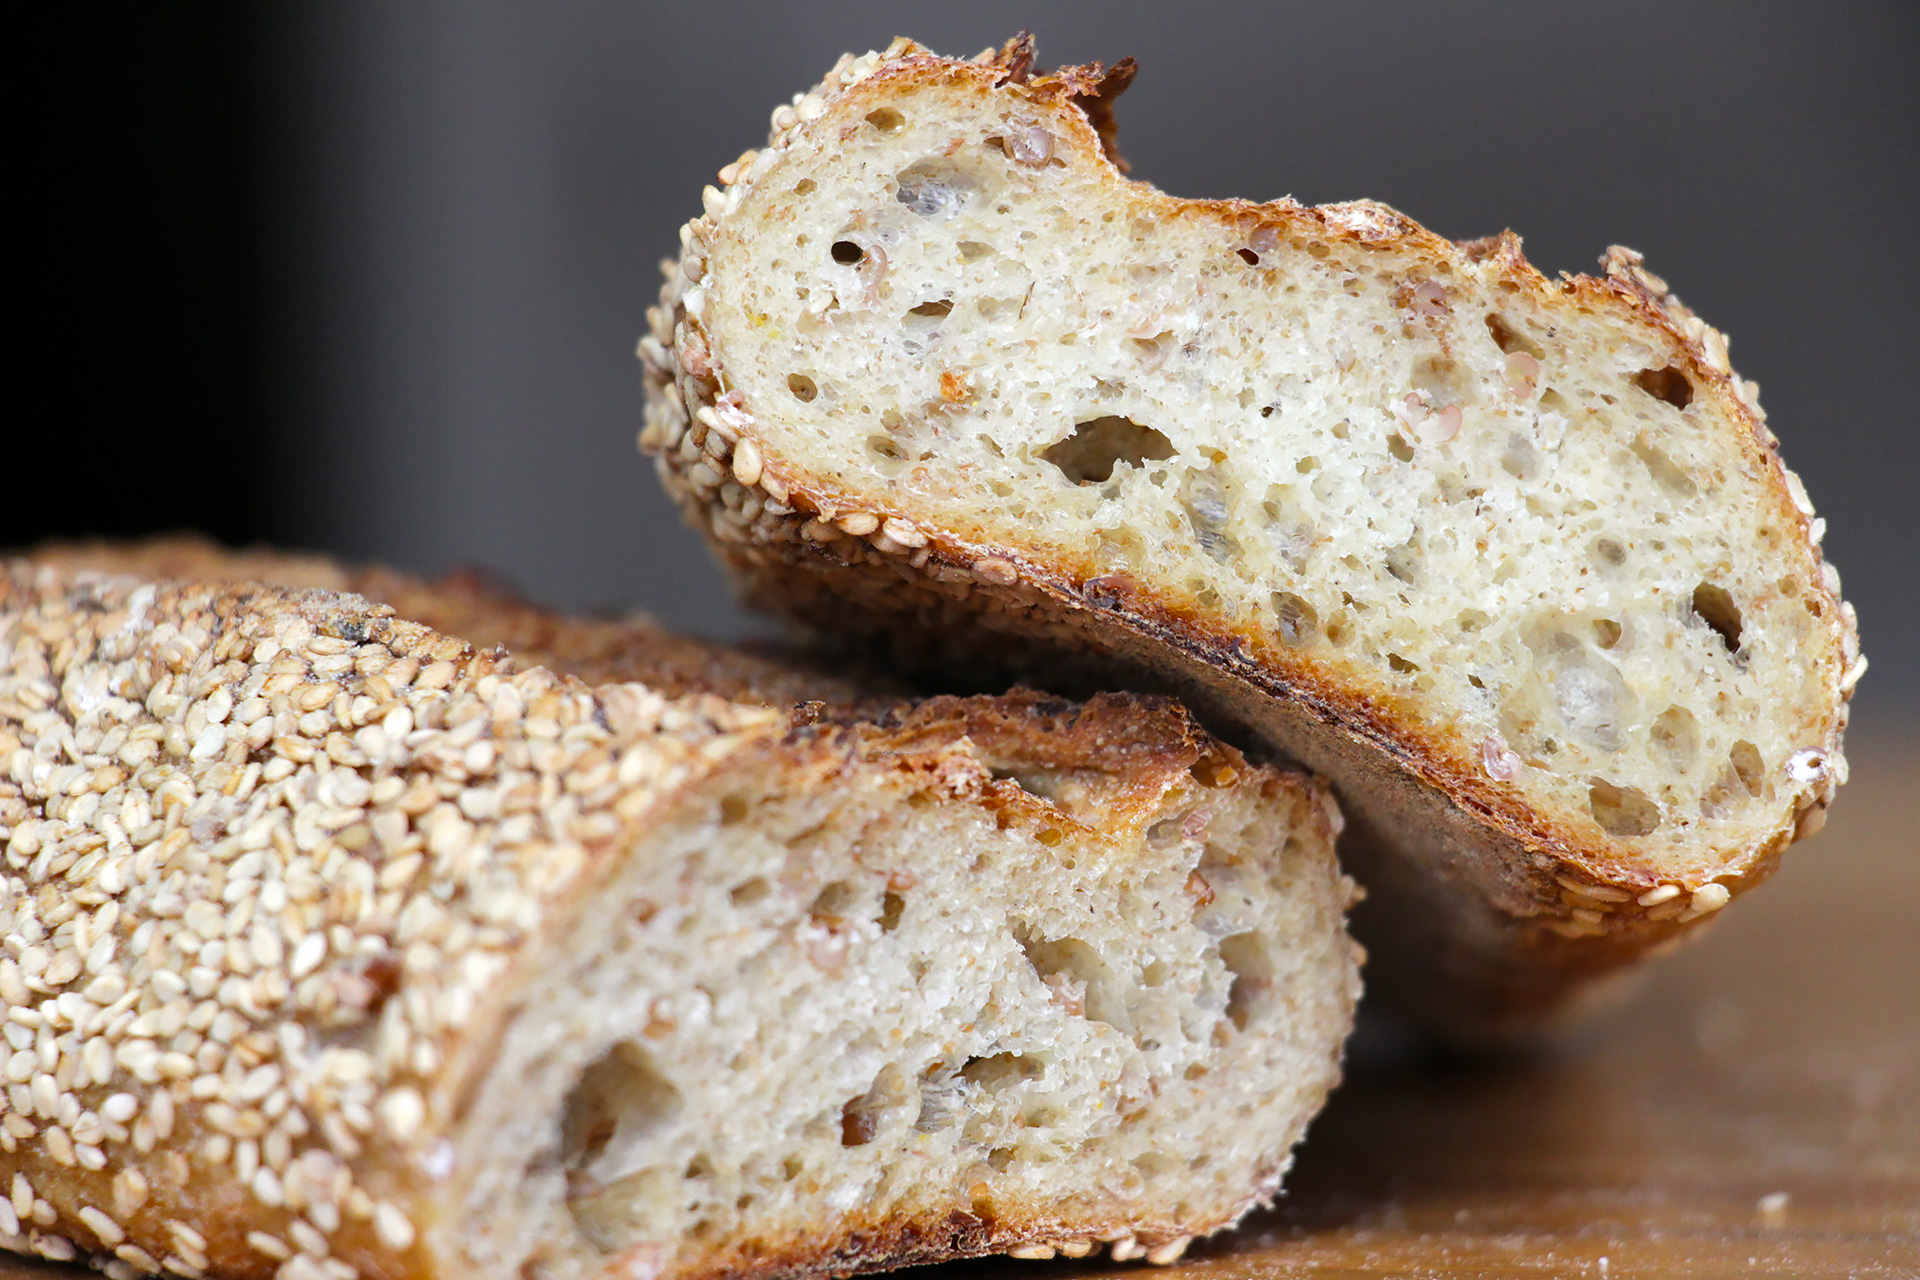 Firebrand's Sprouted Rye Demi Baguette